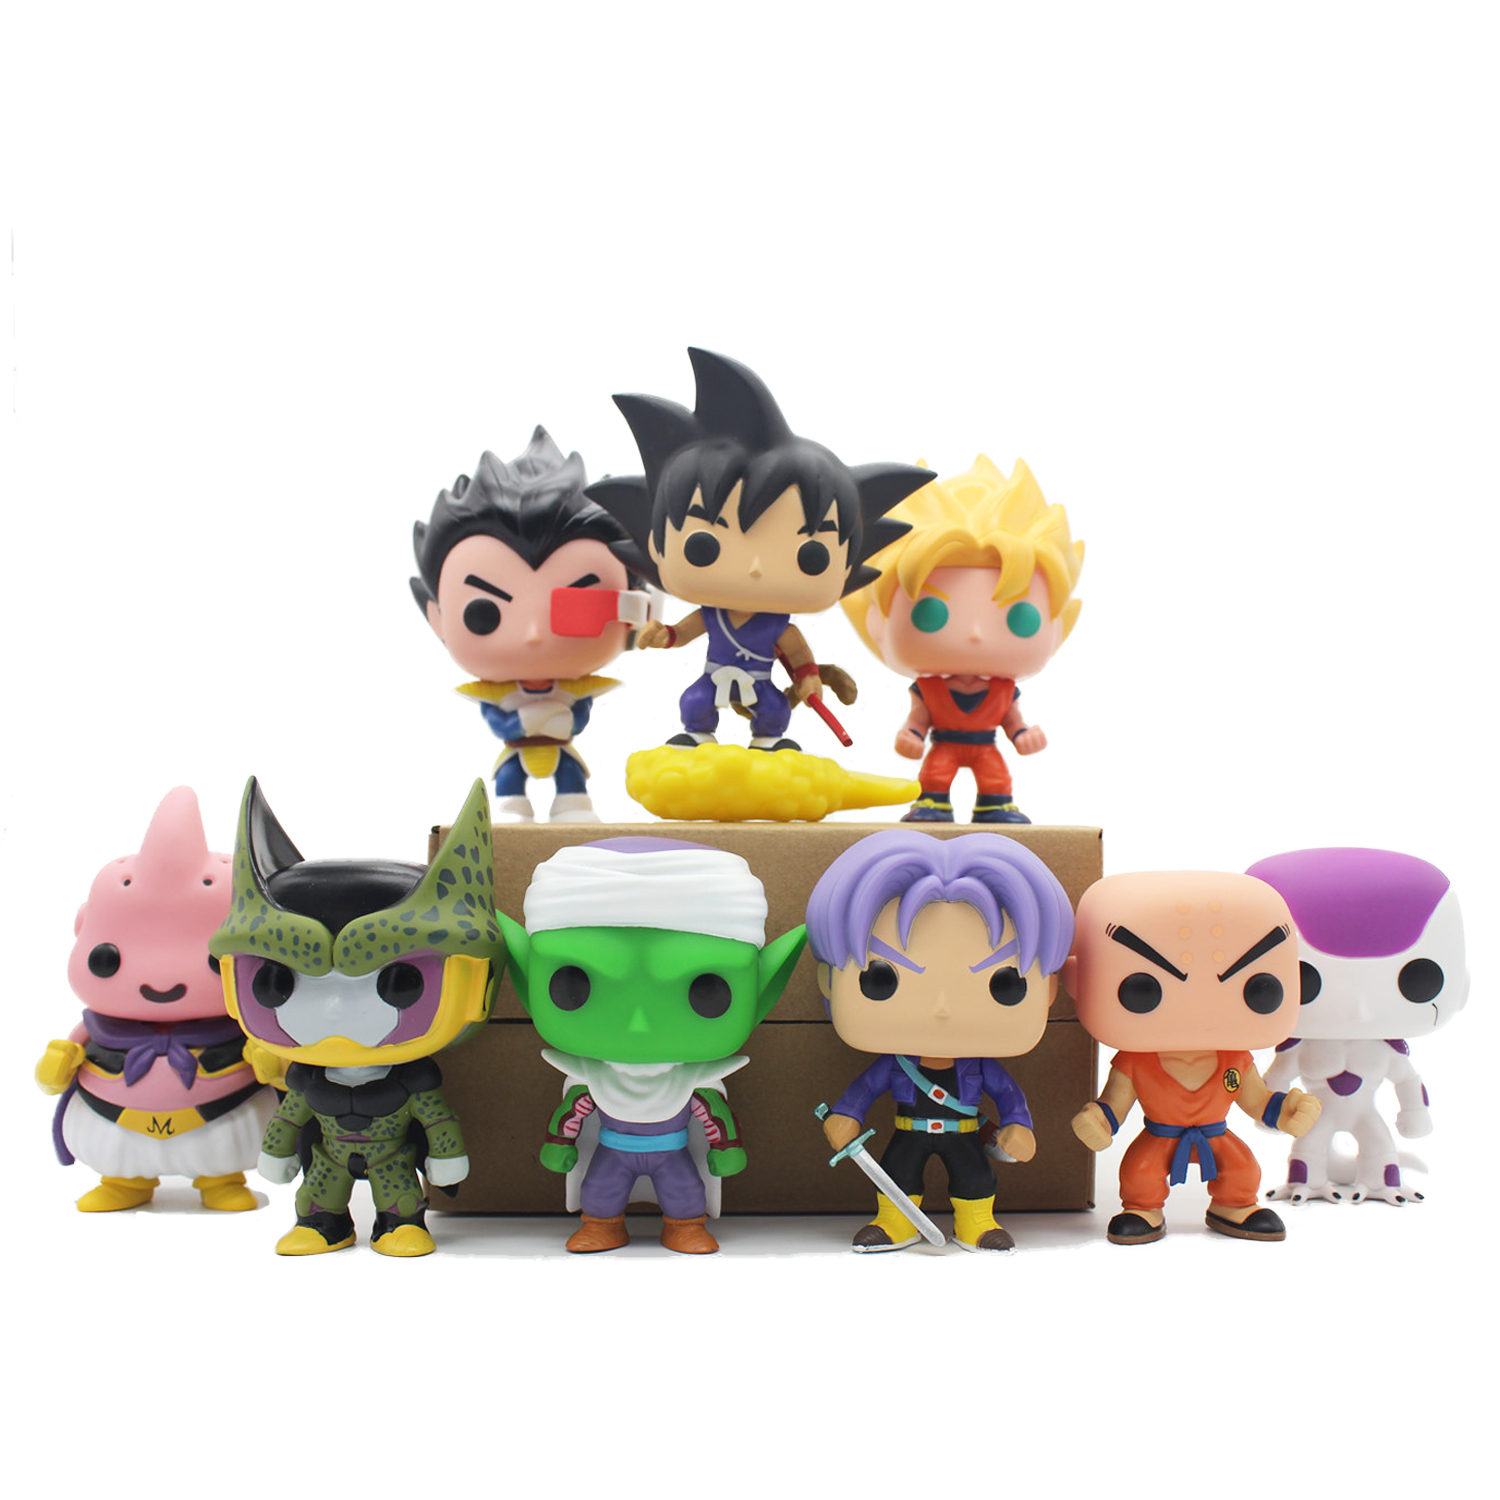 Chanycore Funko Pop Dragon Ball Anime Son Goku Piccolo Frieza Cell Vegeta Buu Krillin Vinyl Trunks Action Figure Model Toys